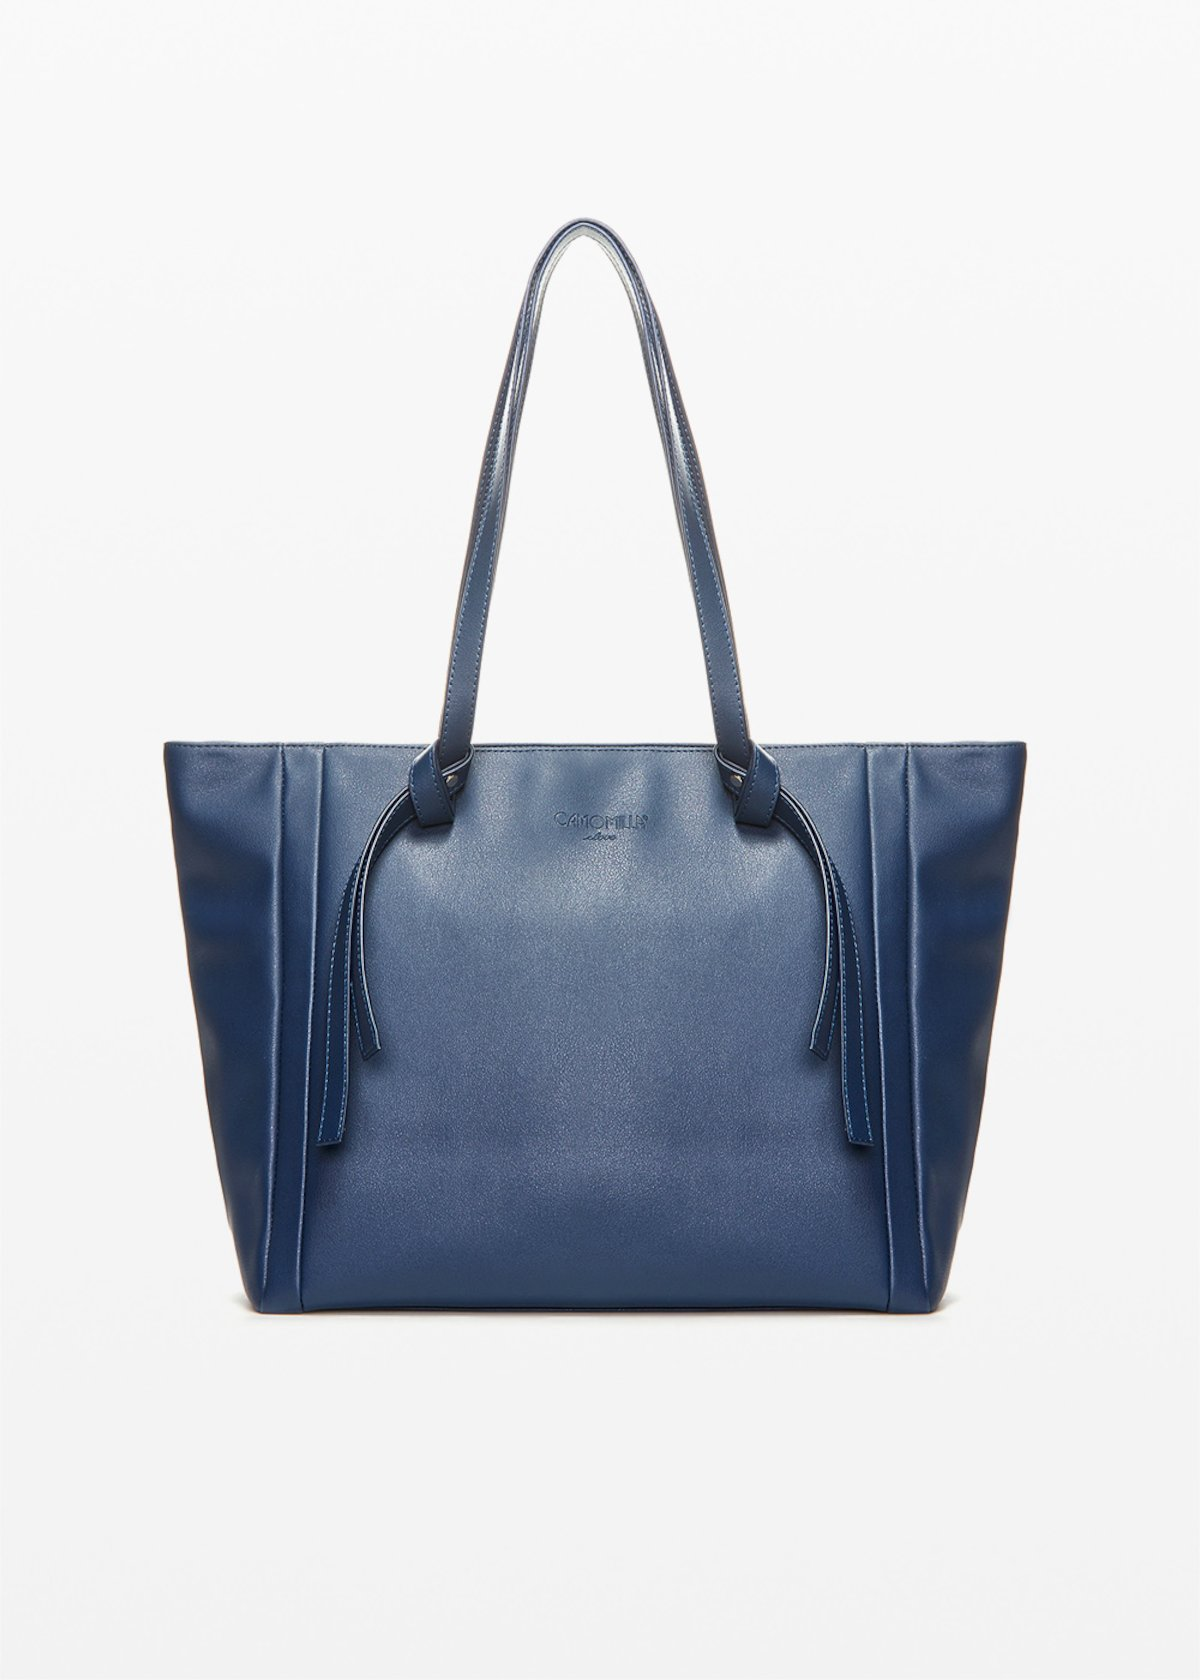 Bodak faux leather shopping bag with knot detail on the handles - Medium Blue